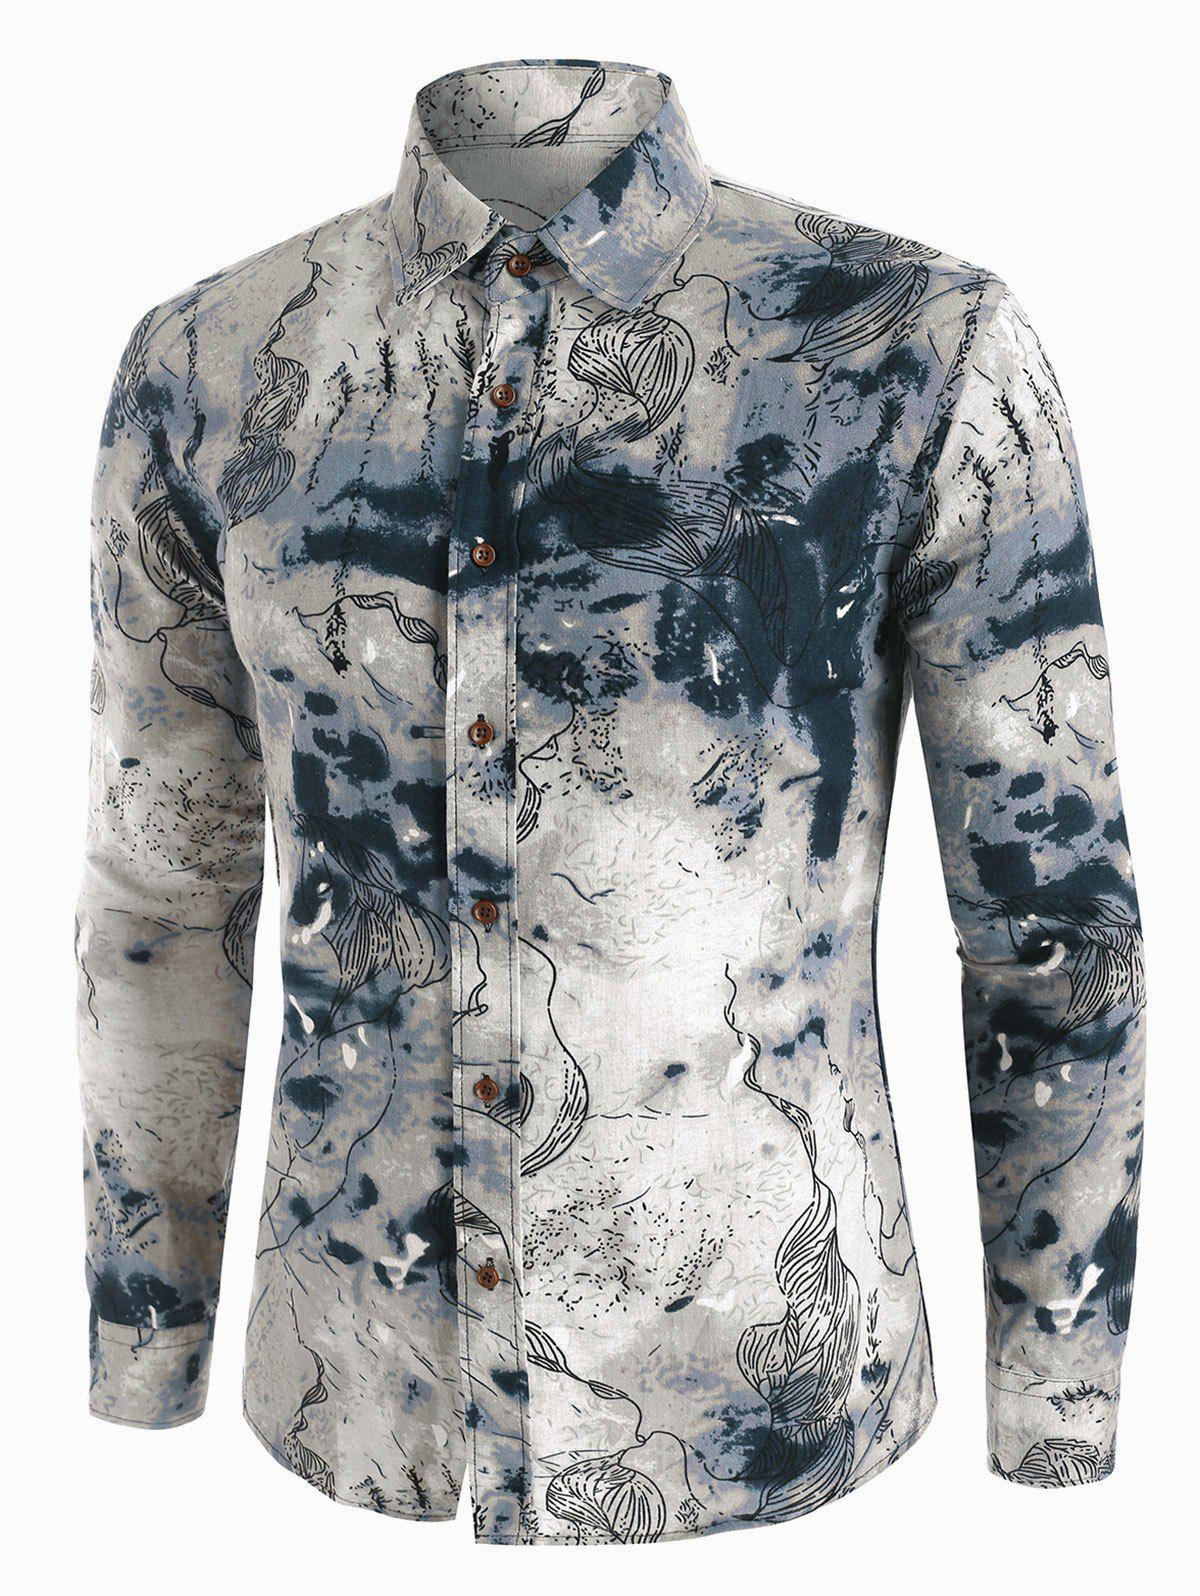 Chic Abstract Landscape Paint Pattern Vintage Long Sleeve Shirt